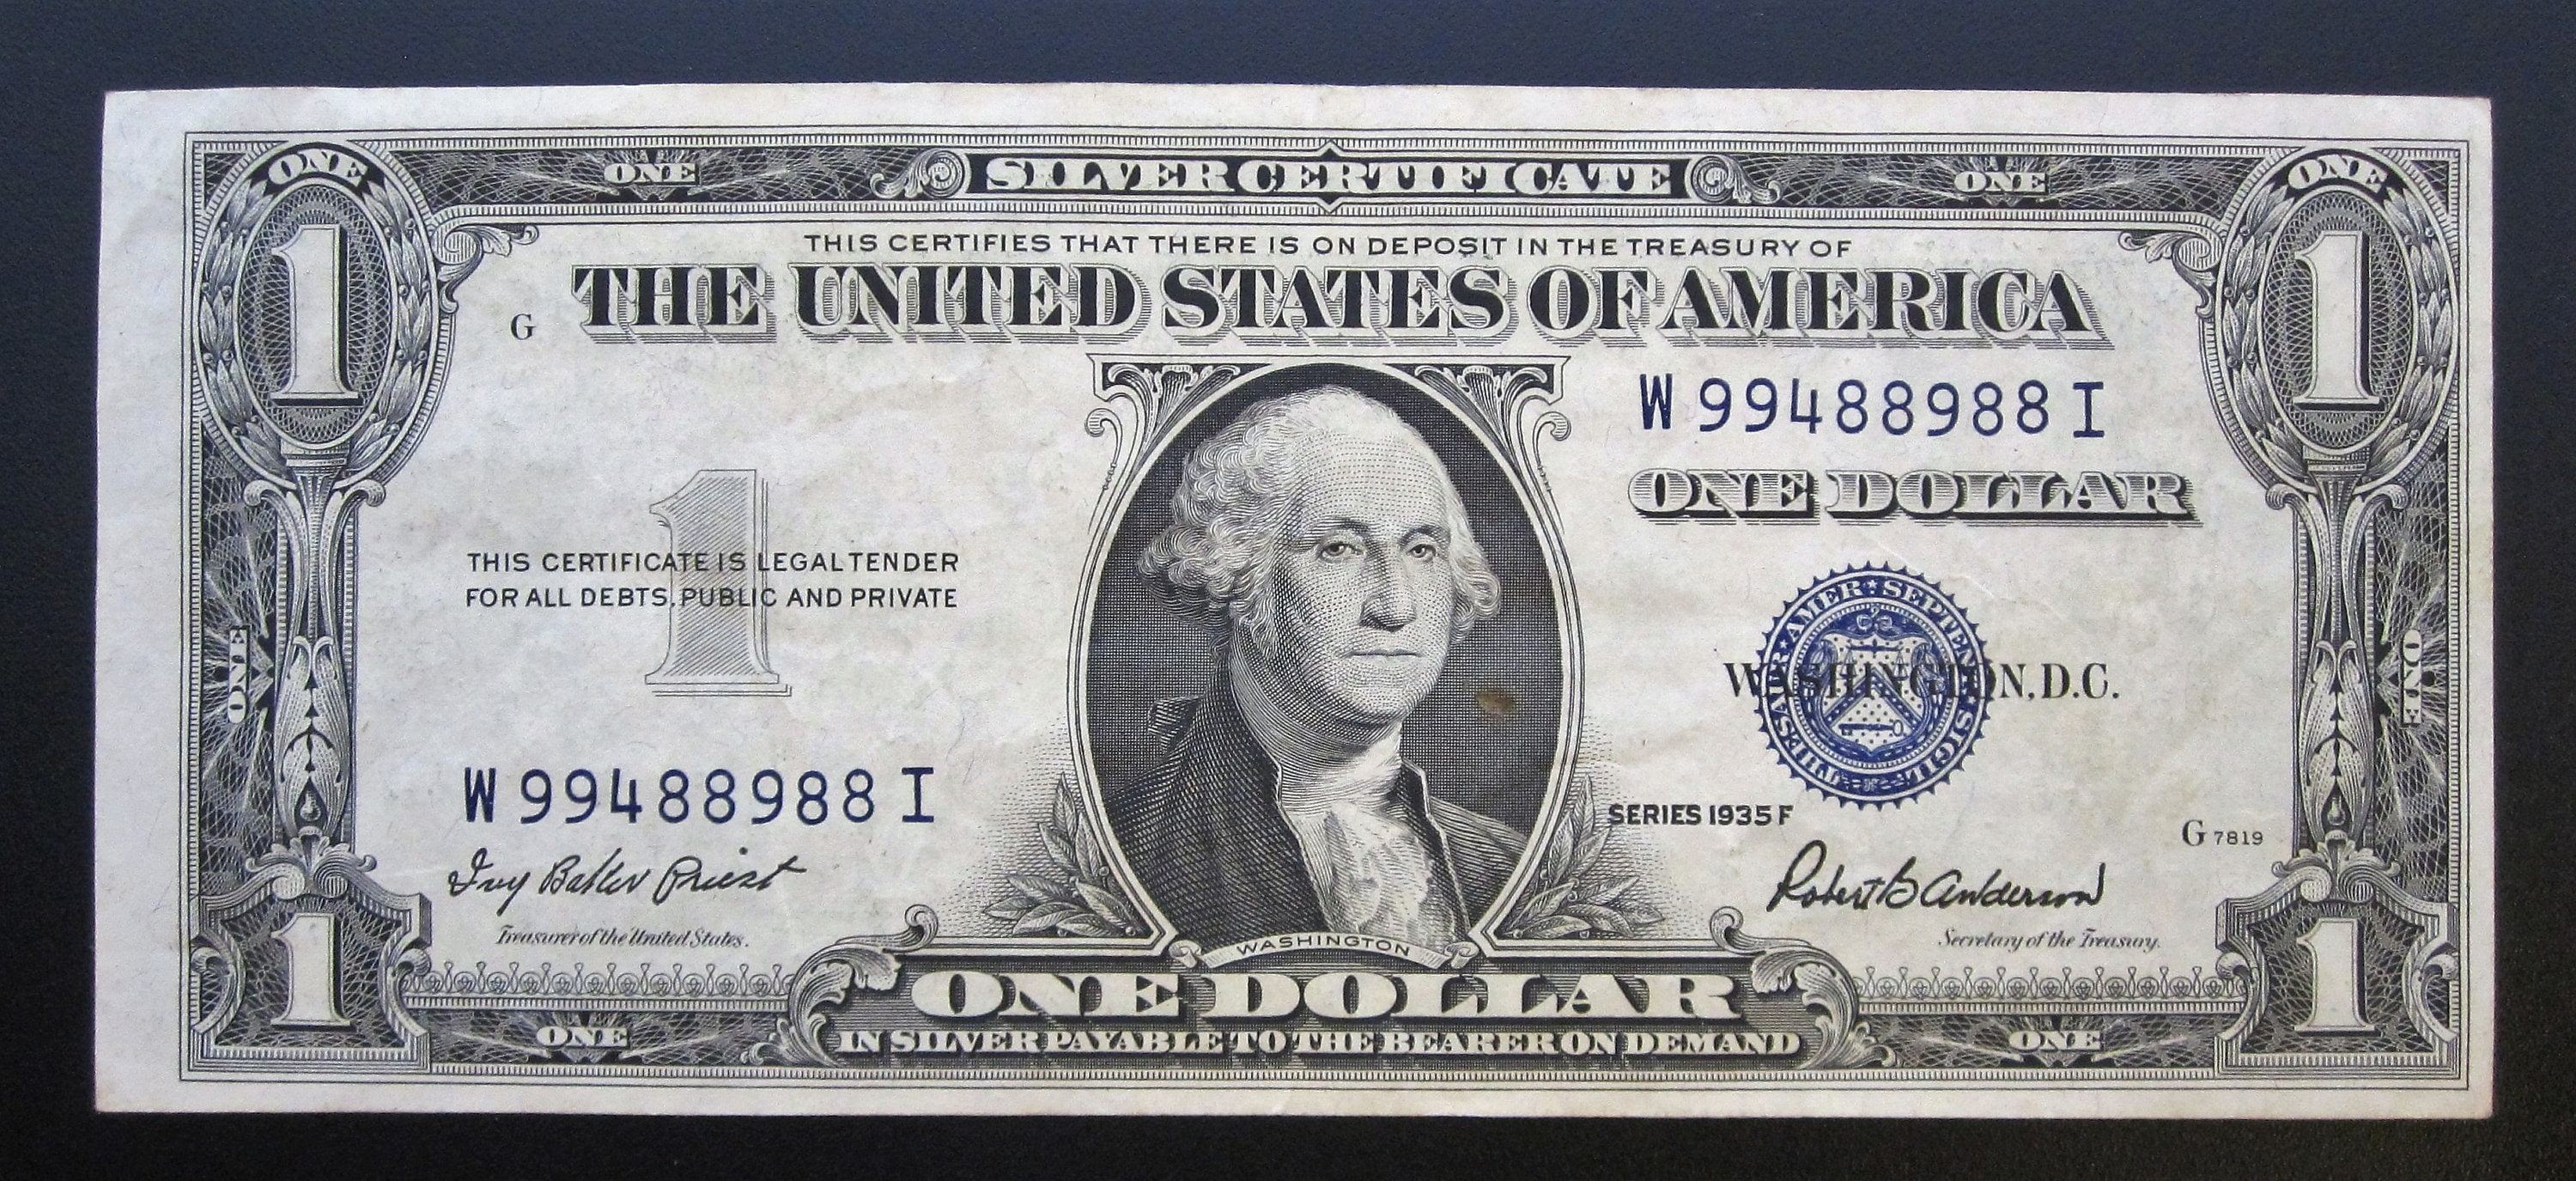 Series 1935 F One Dollar Silver Certificate W 99488988 I Etsy